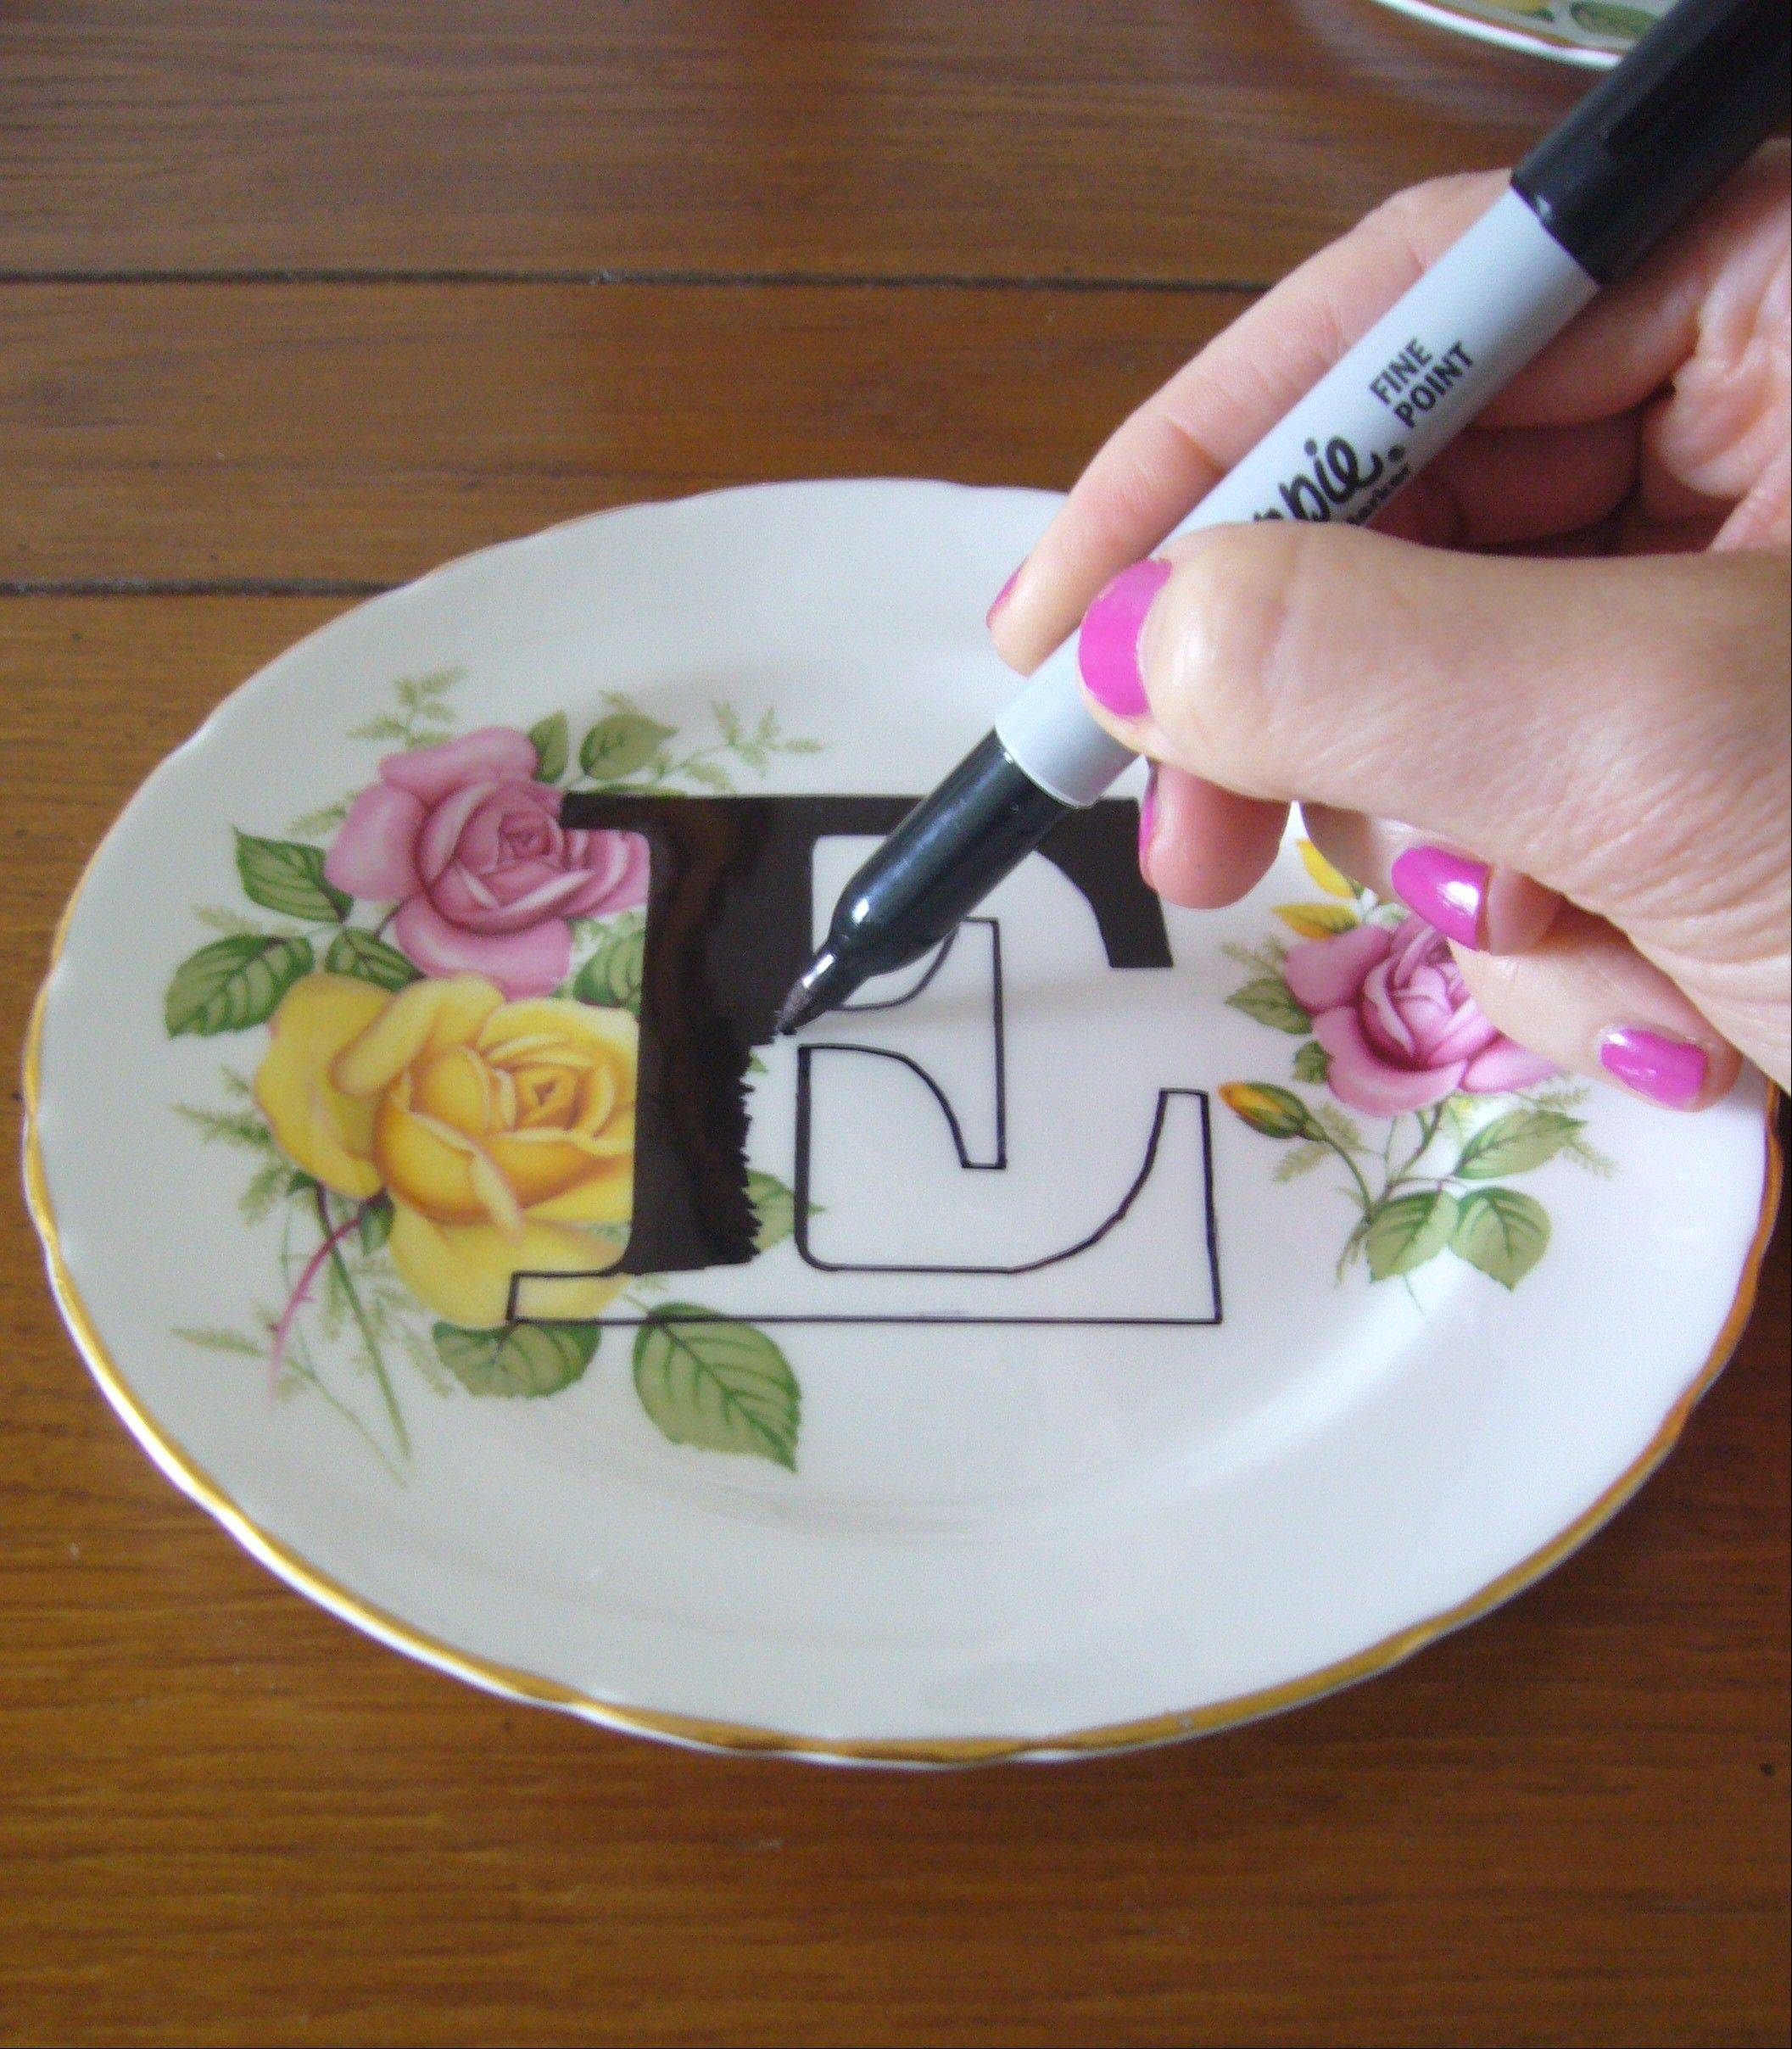 "A vintage plate is upcycled with a modern letter ""E,"" filled in with a Sharpie, to complete a plate-decorating project."